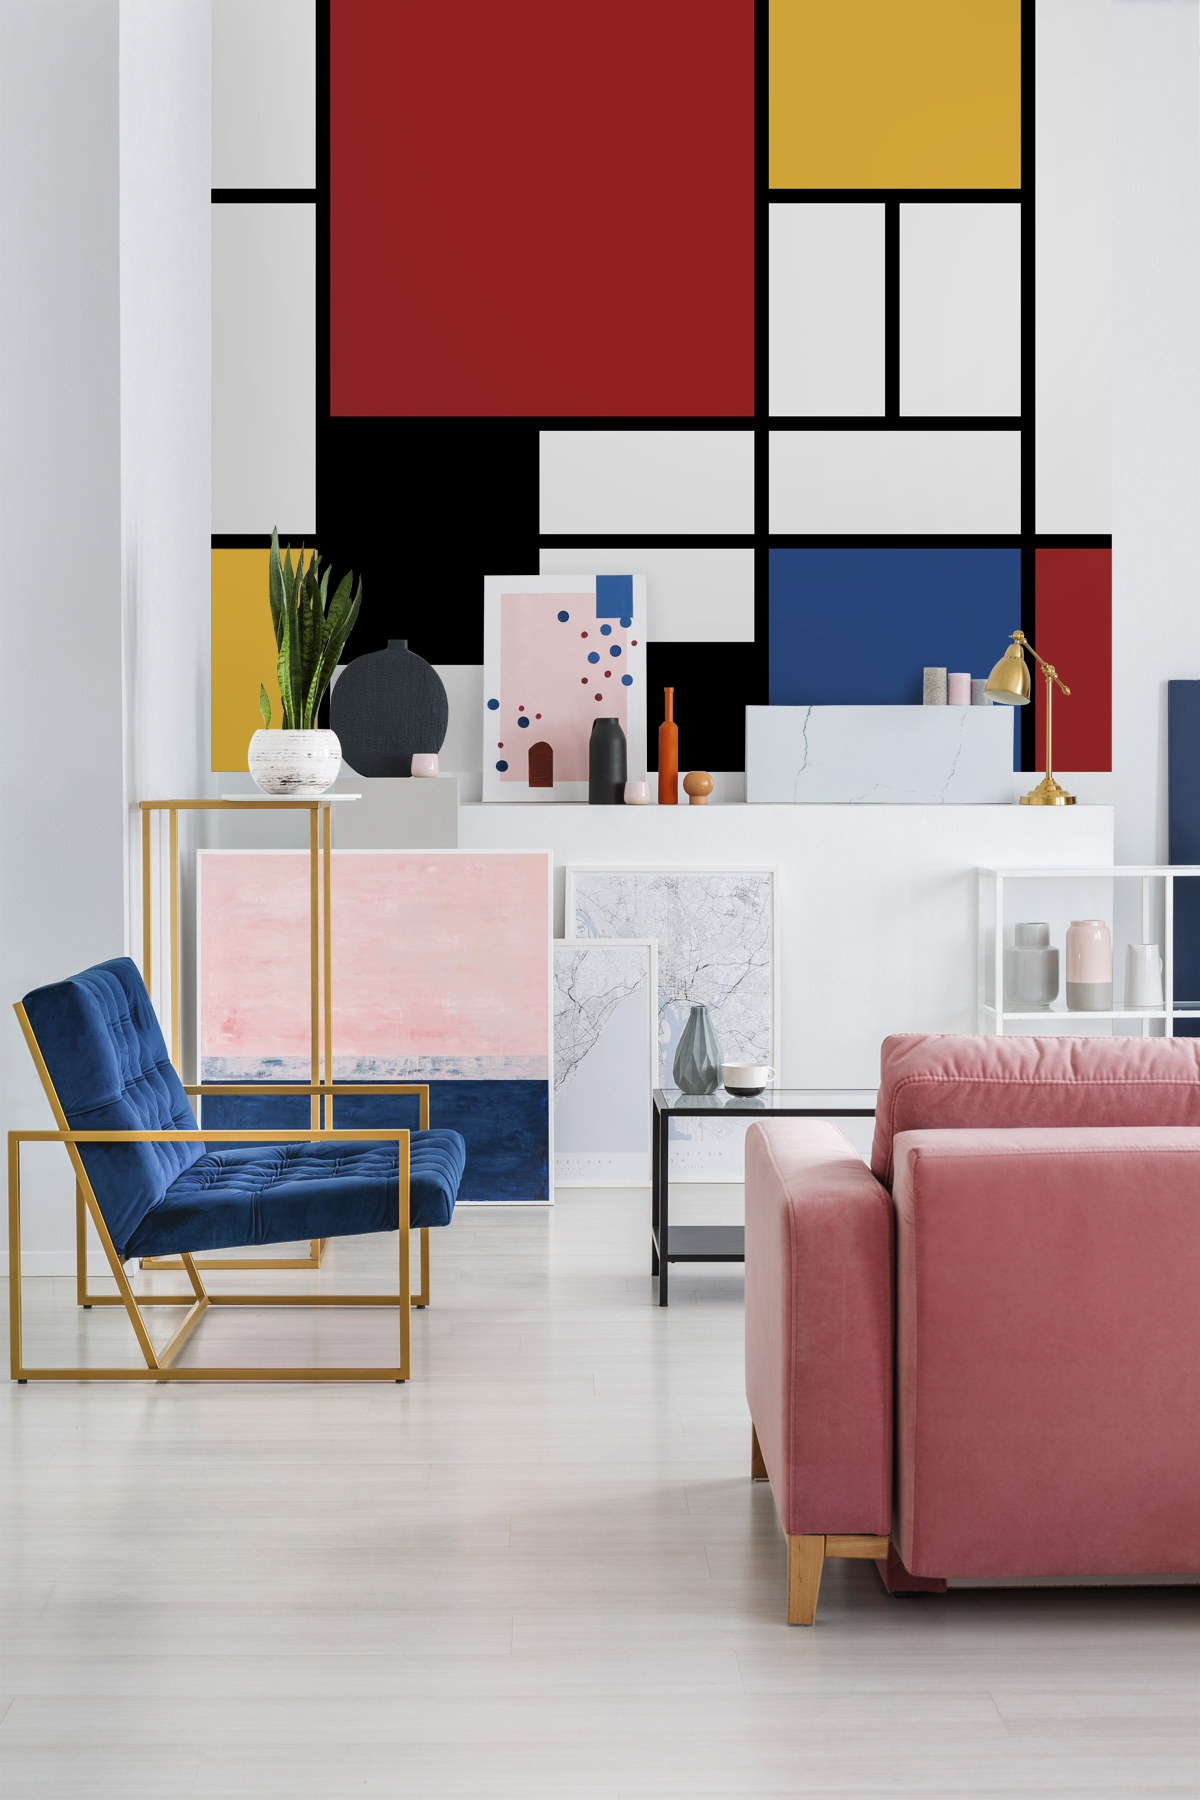 Mondrian by ARCHITECTOR